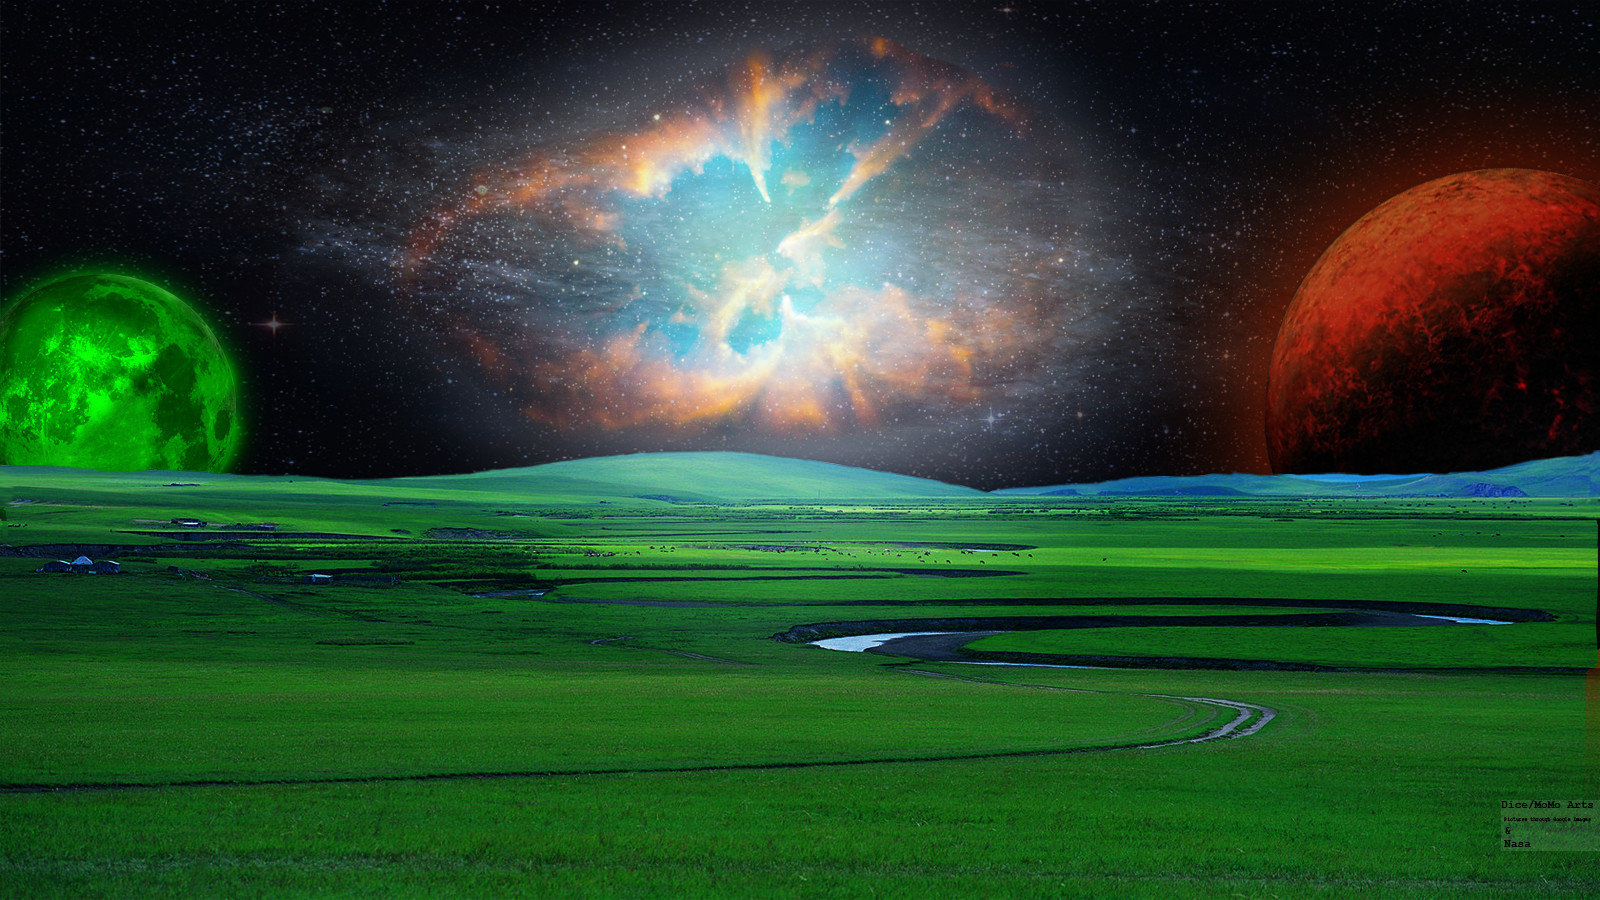 Awesome Sci Fi Landscape Free Wallpaper ID232869 For Hd 1600x900 Computer